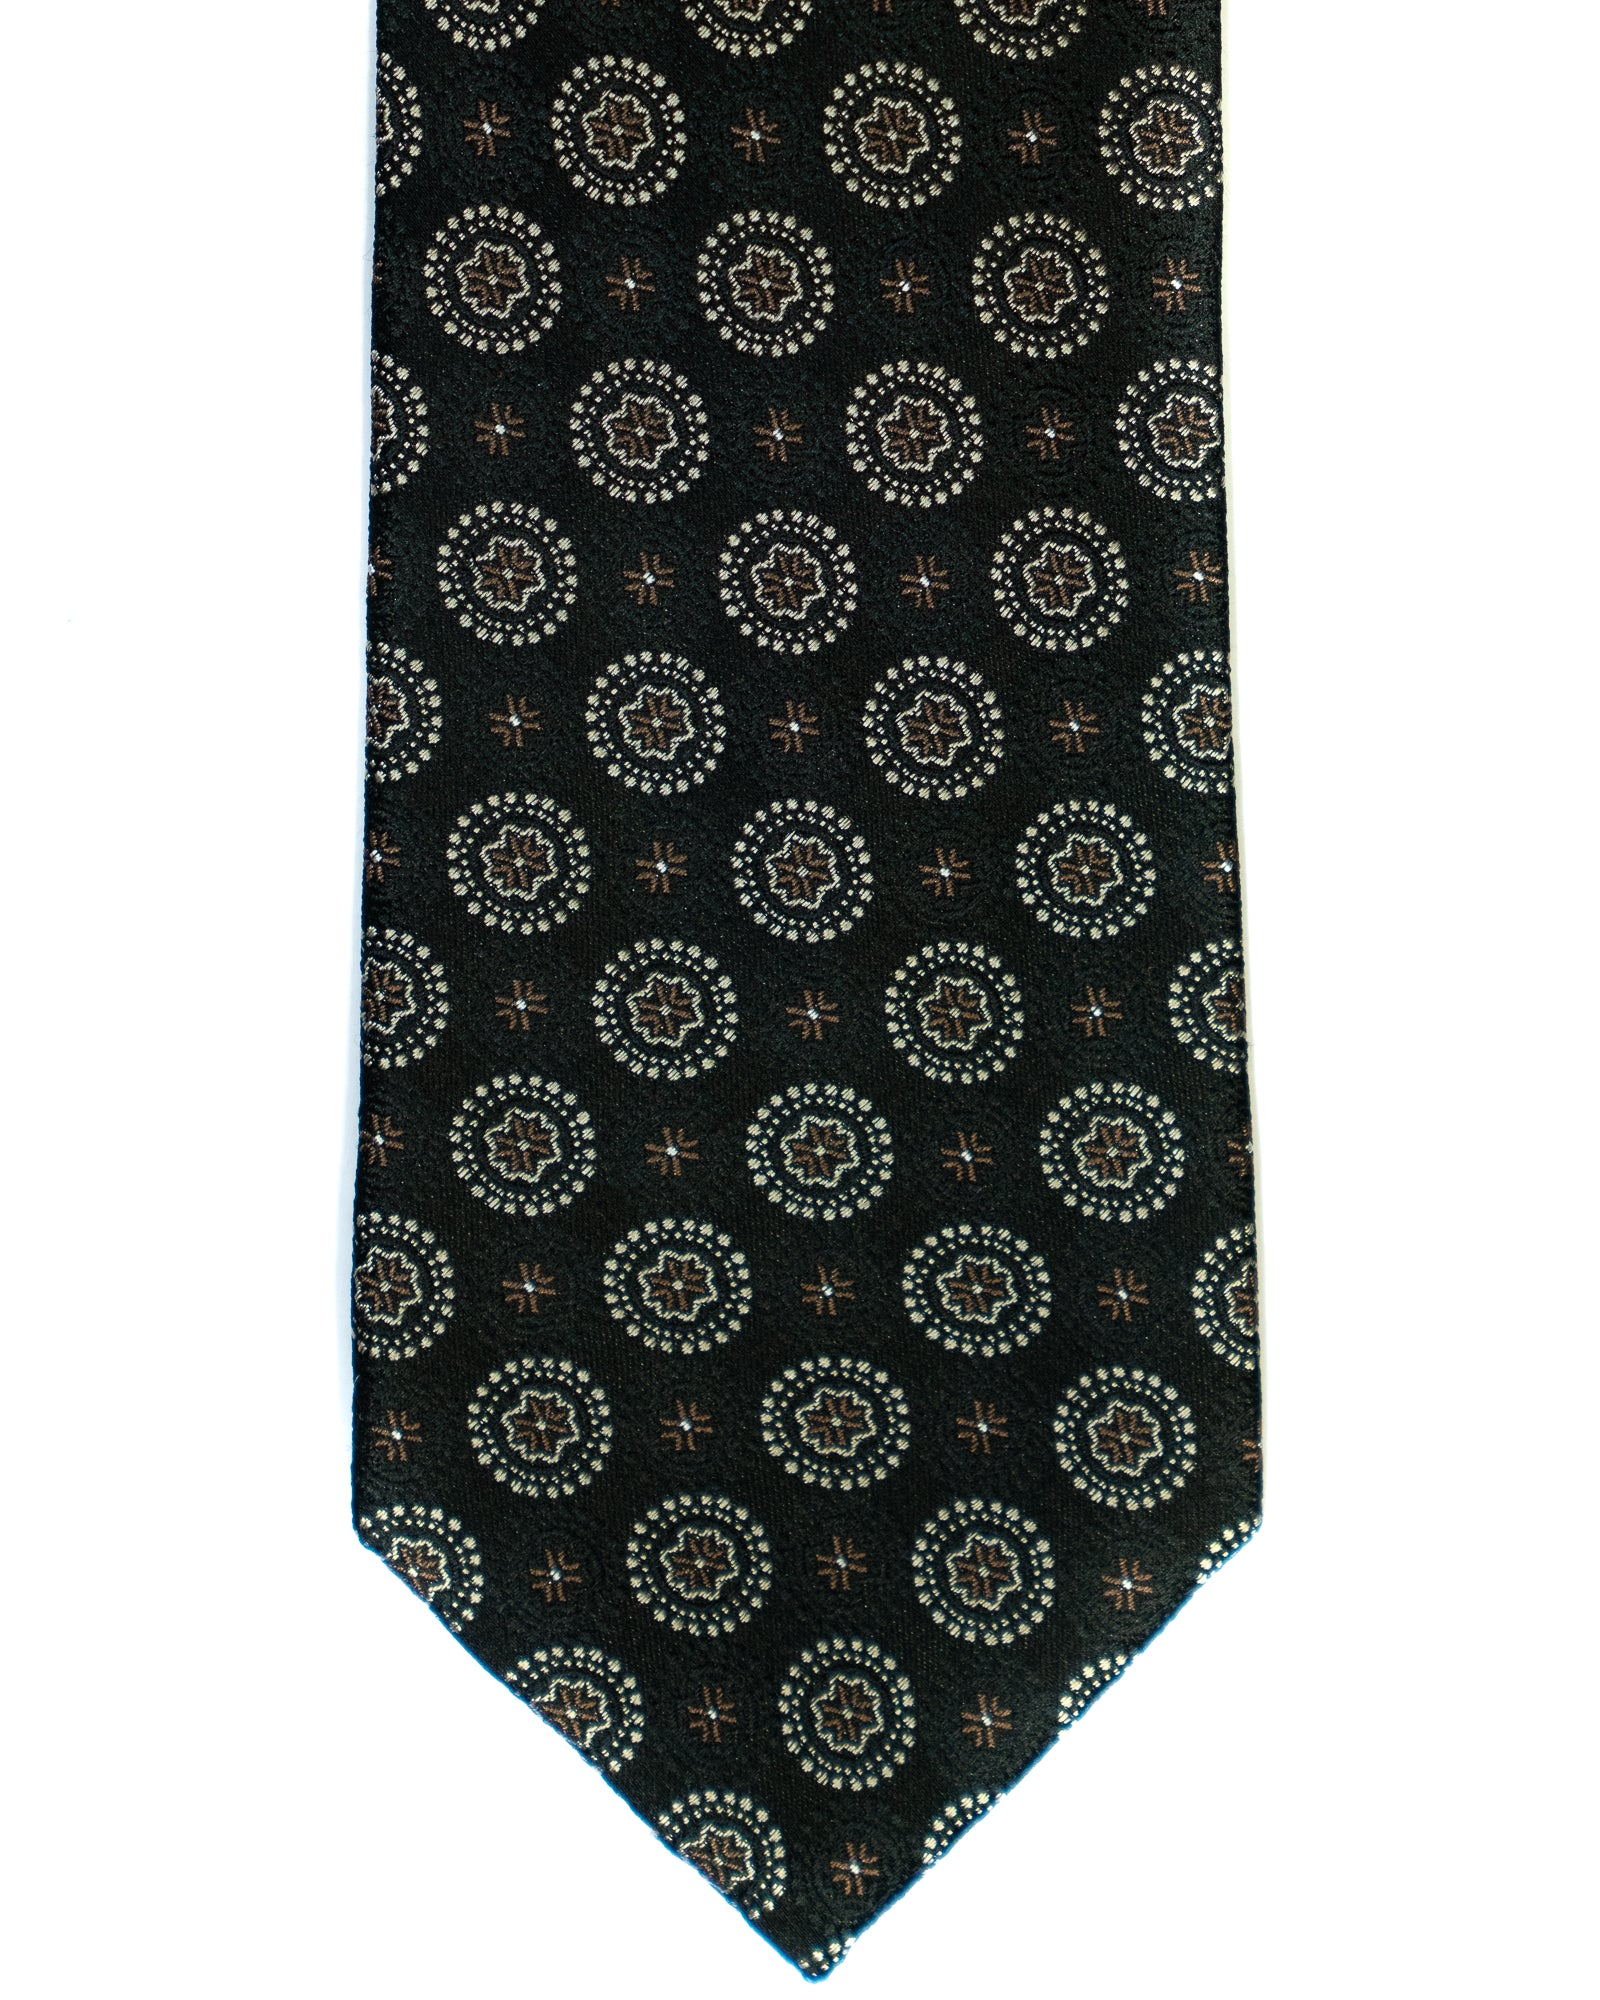 Silk Tie In Black With Brown Foulard Print - Rainwater's Men's Clothing and Tuxedo Rental